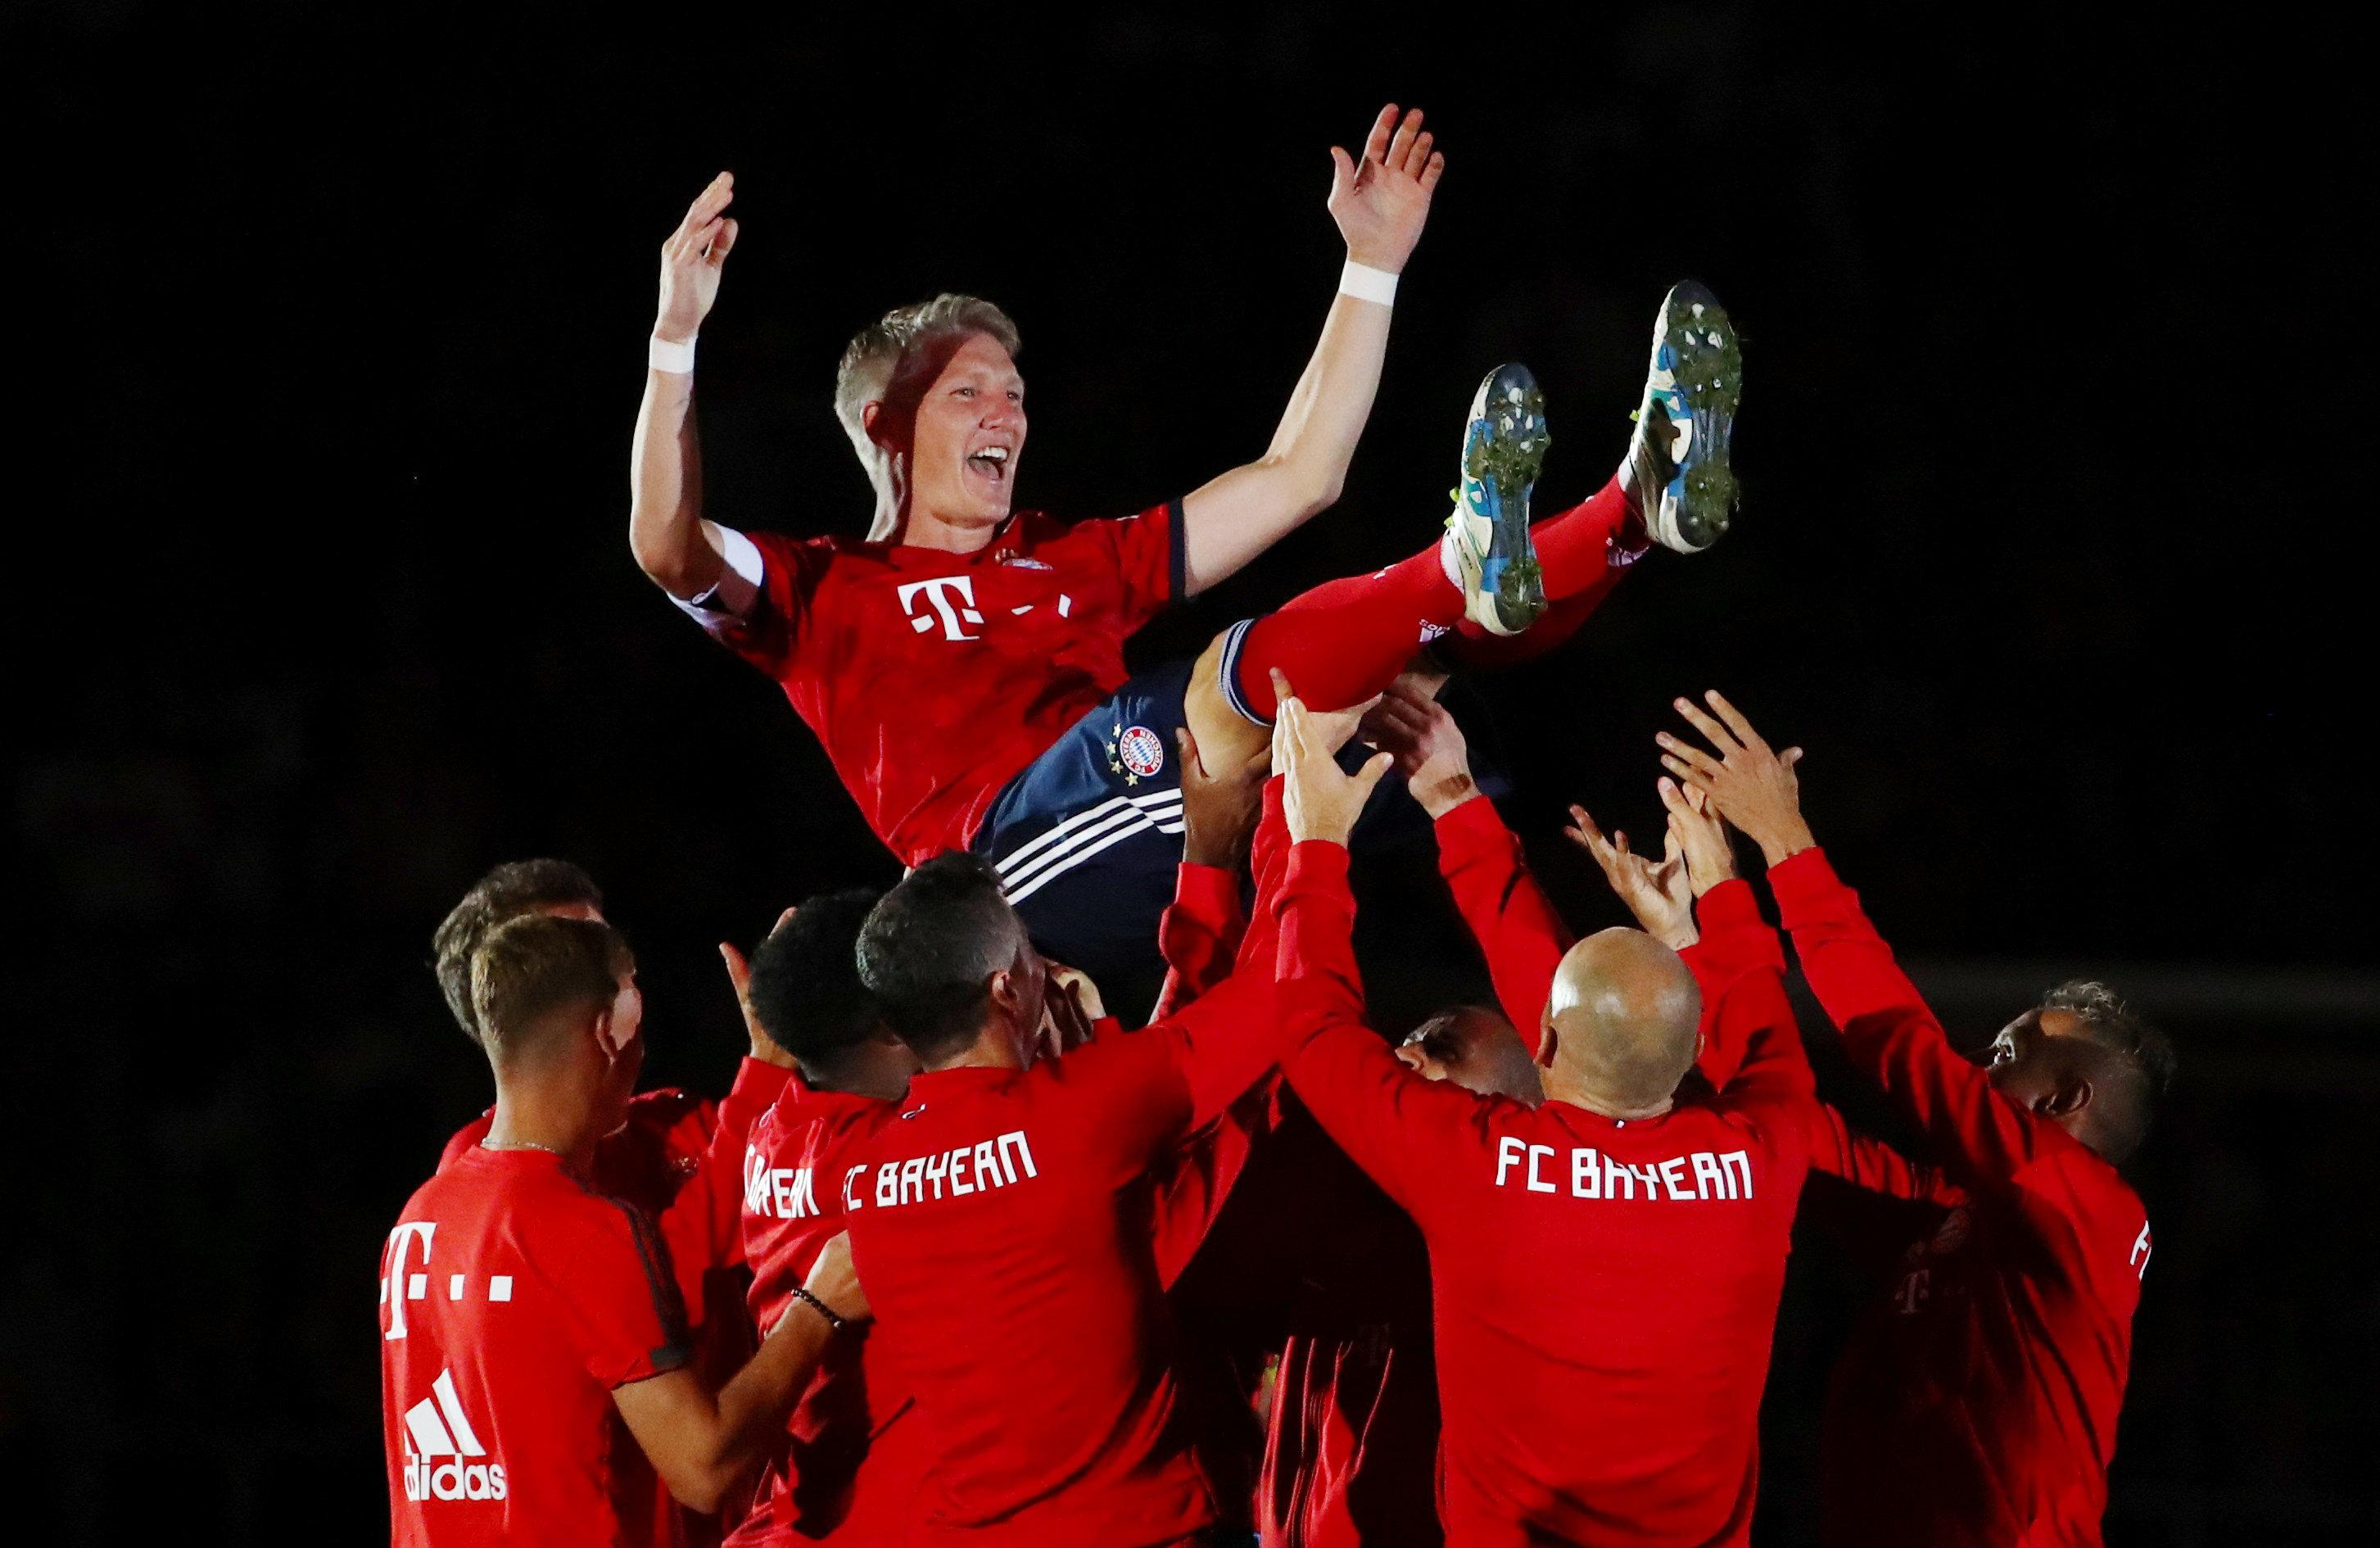 Bastian Schweinsteiger celebrated his glittering career with a testimonial on Tuesday